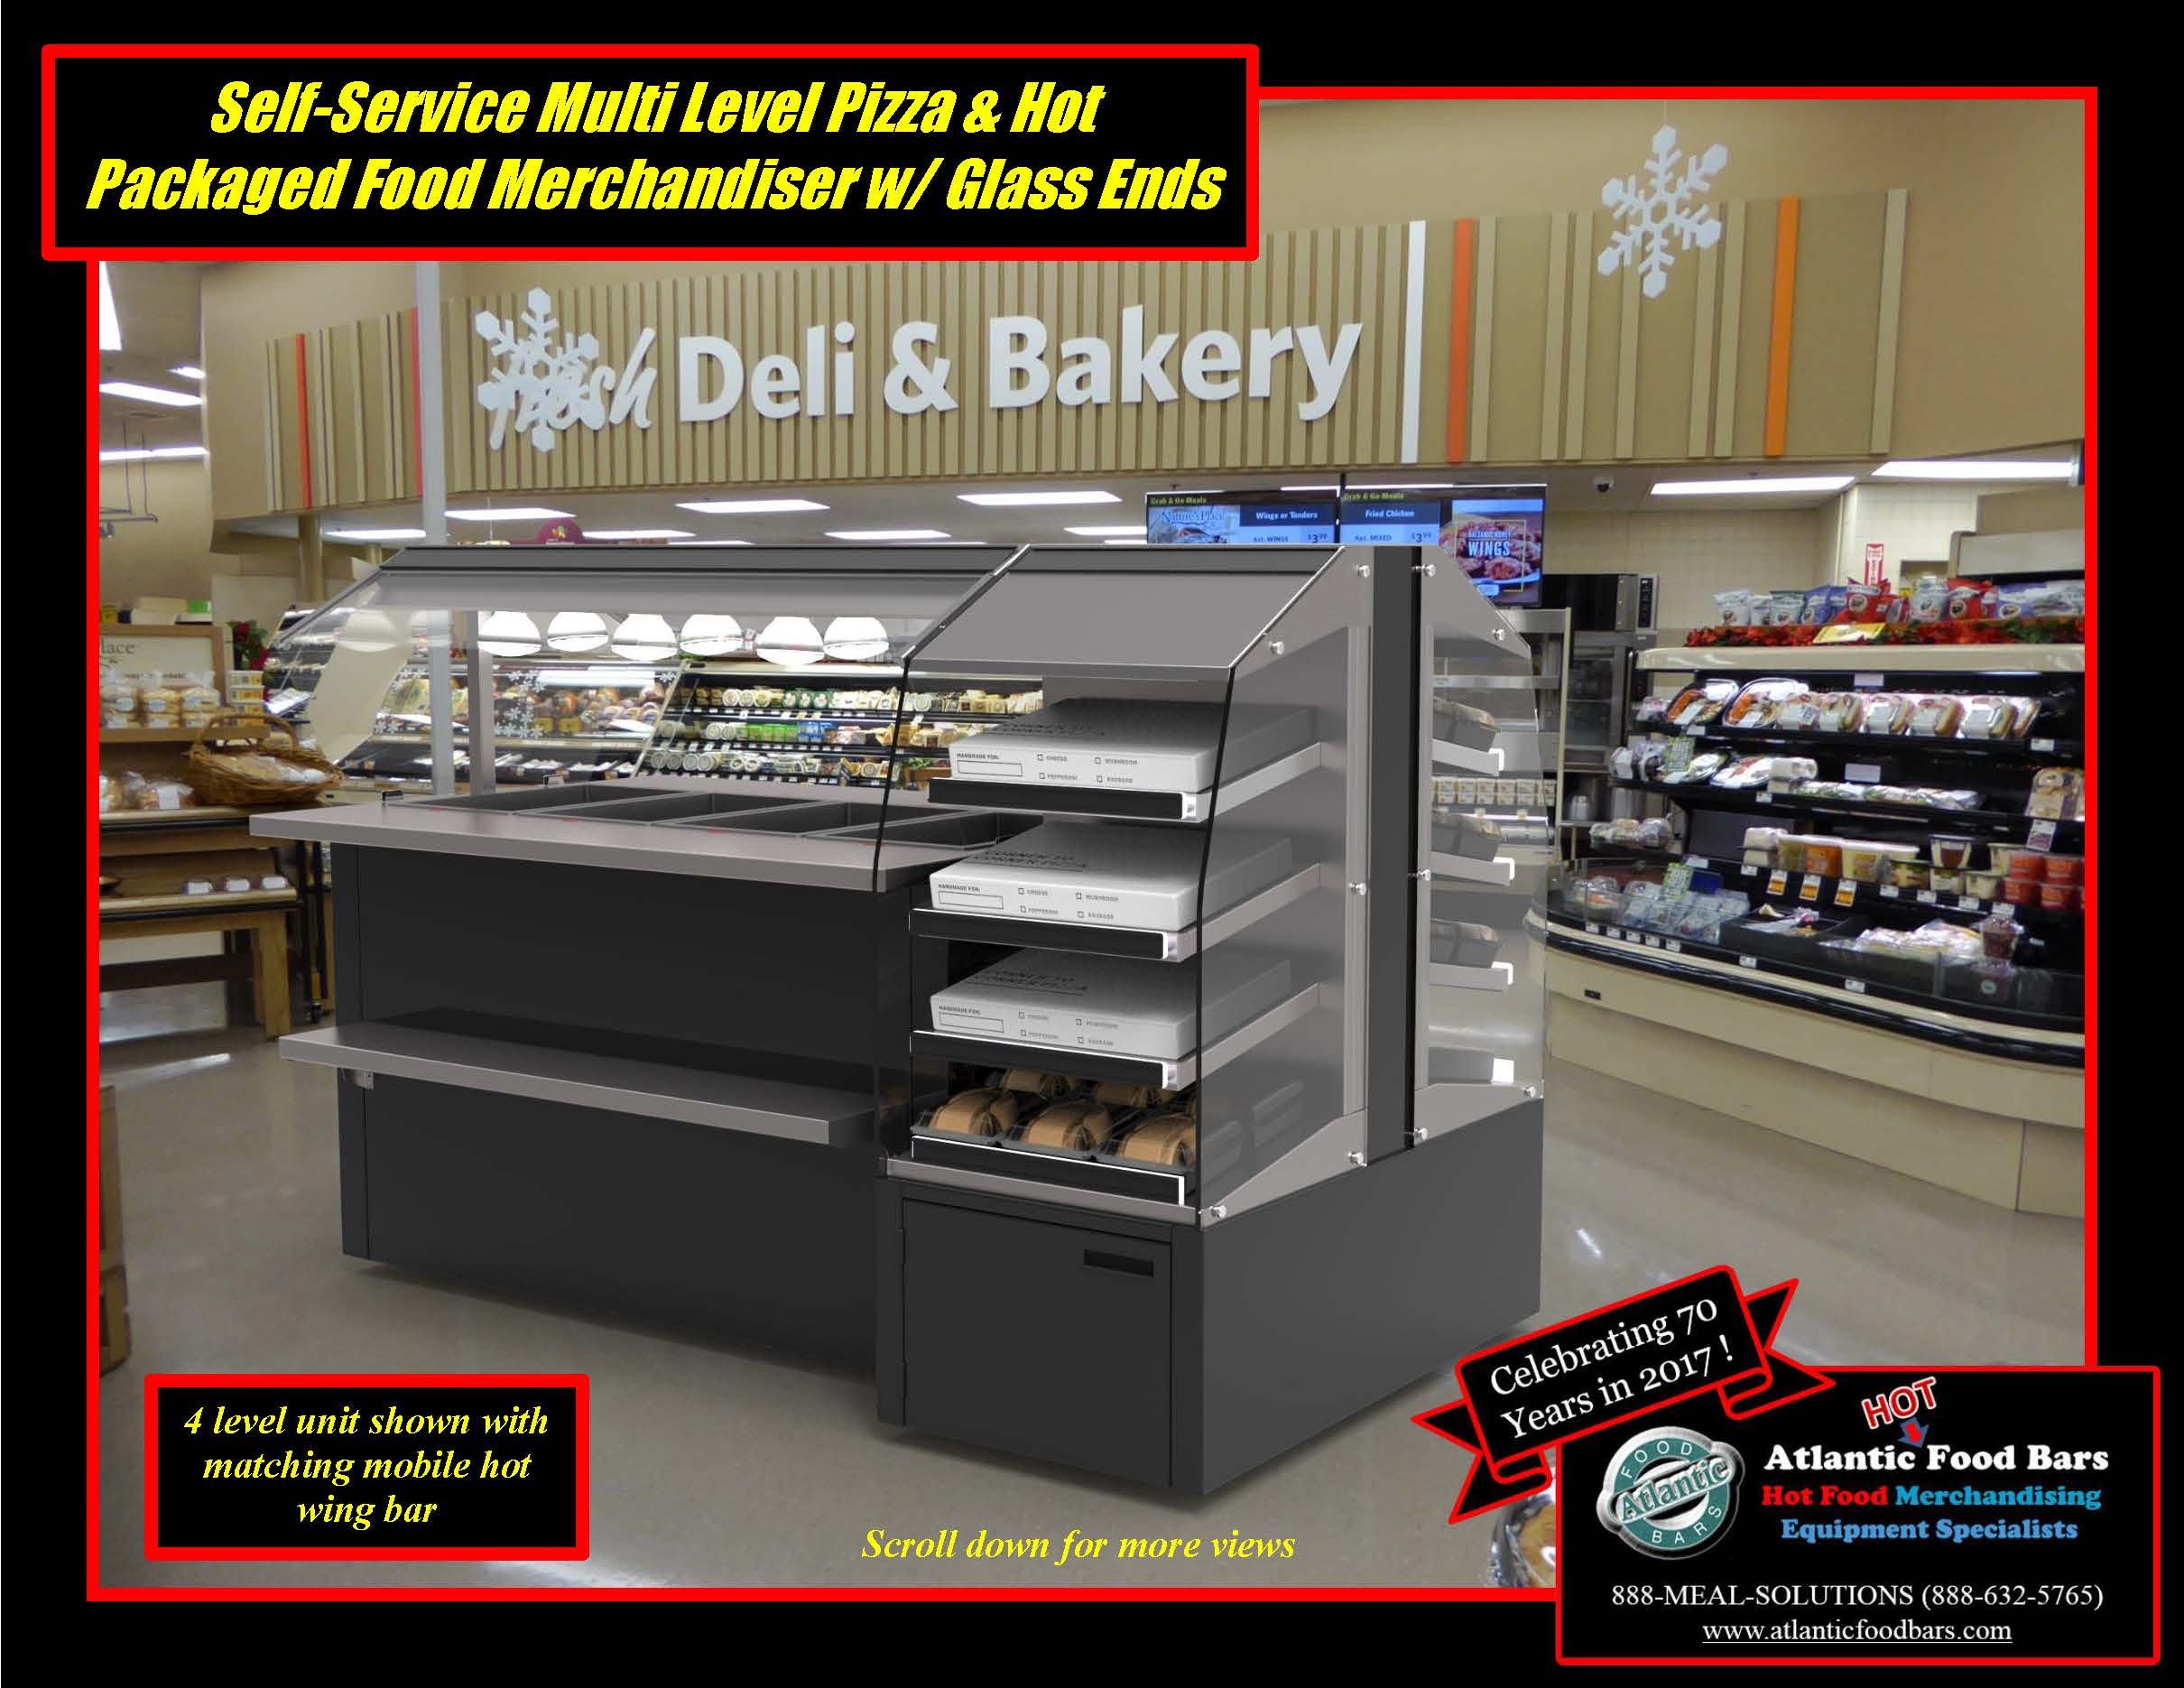 Atlantic Food Bars - Self-Service Multi Level Pizza & Hot Packaged Food Merchandiser with Glass Ends